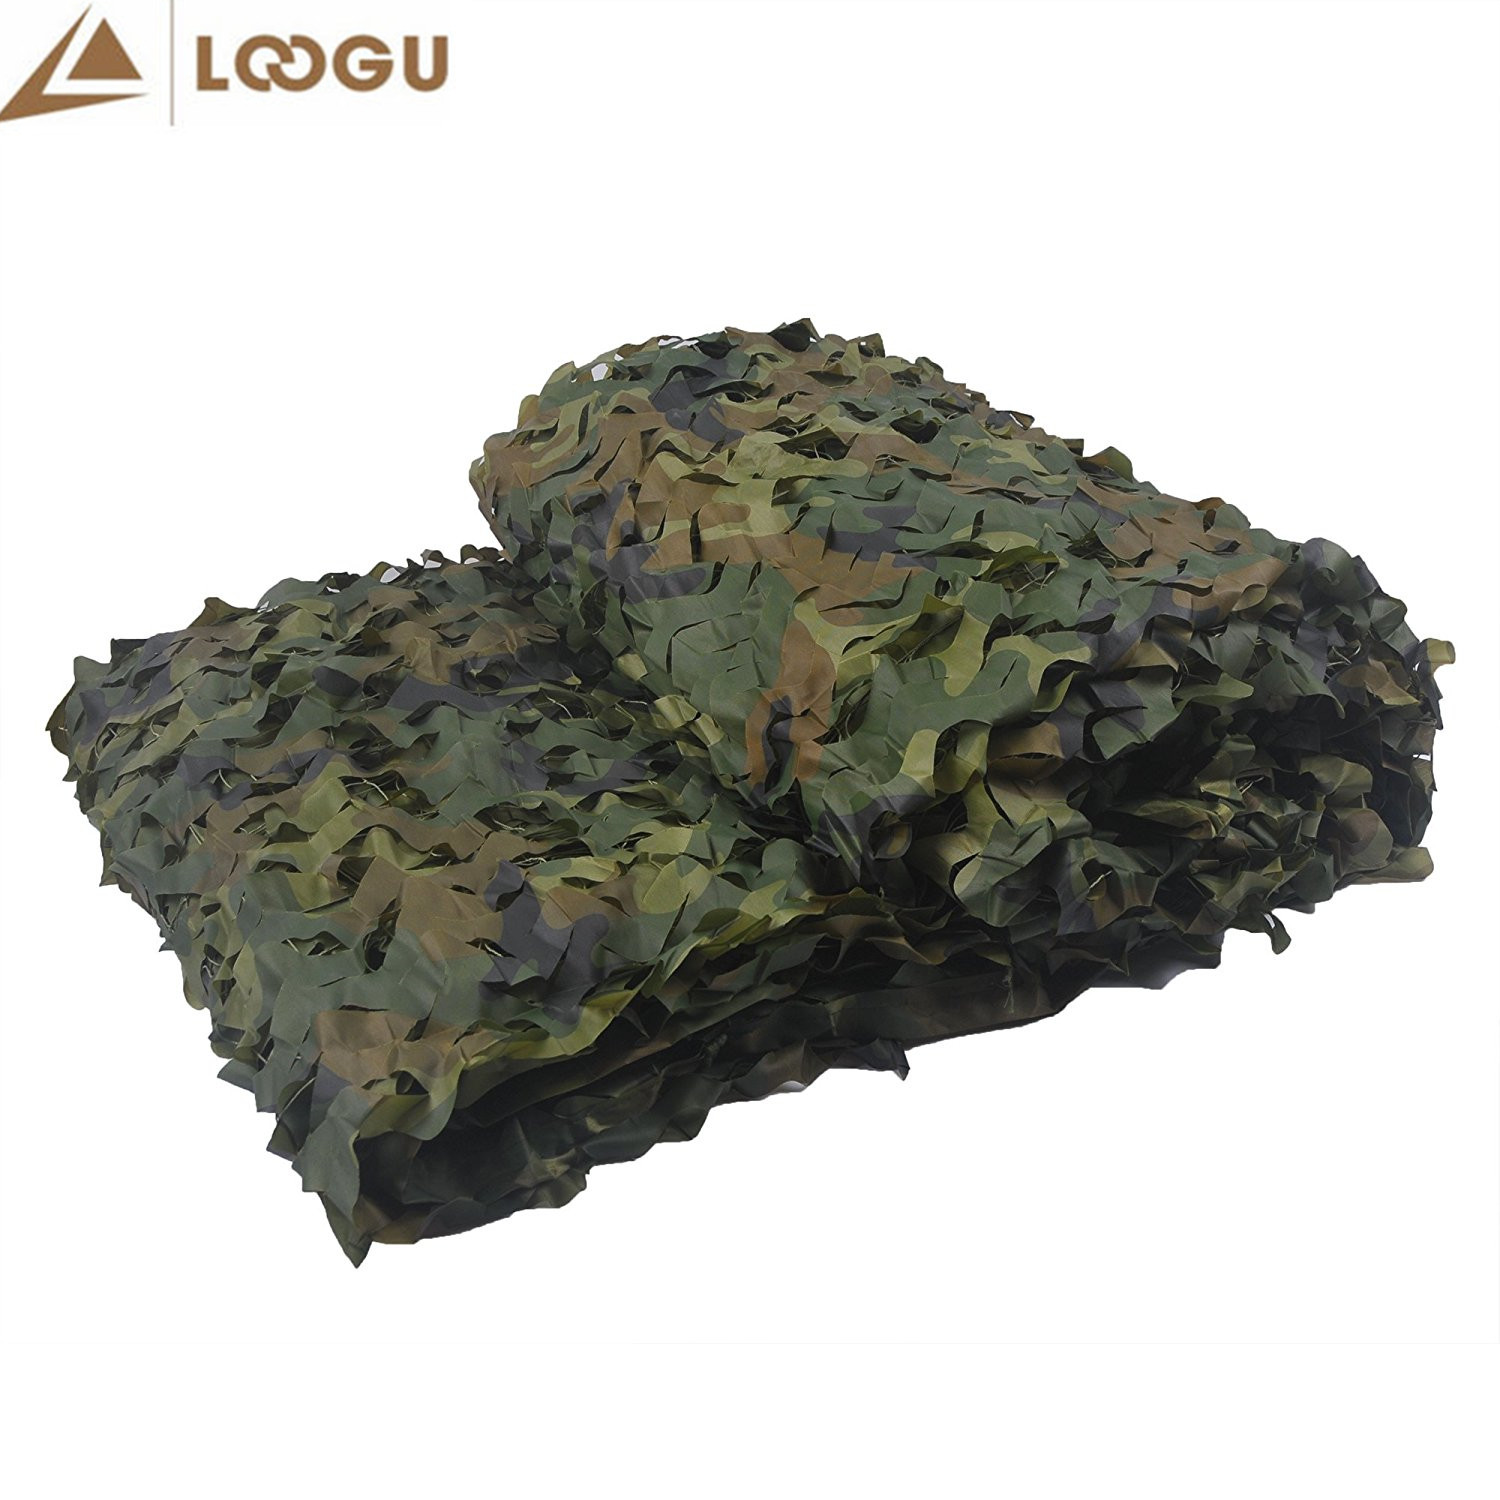 3M *6M Woodland Digital Camo Netting Sun Shelter Military Jungle Camouflage Net Sun Shelter for Hunting Camping Tourist Sun Tent vilead 3m x 8m 10ft x 26ft digital military camouflage net woodland army camo netting sun shelter for hunting camping tent